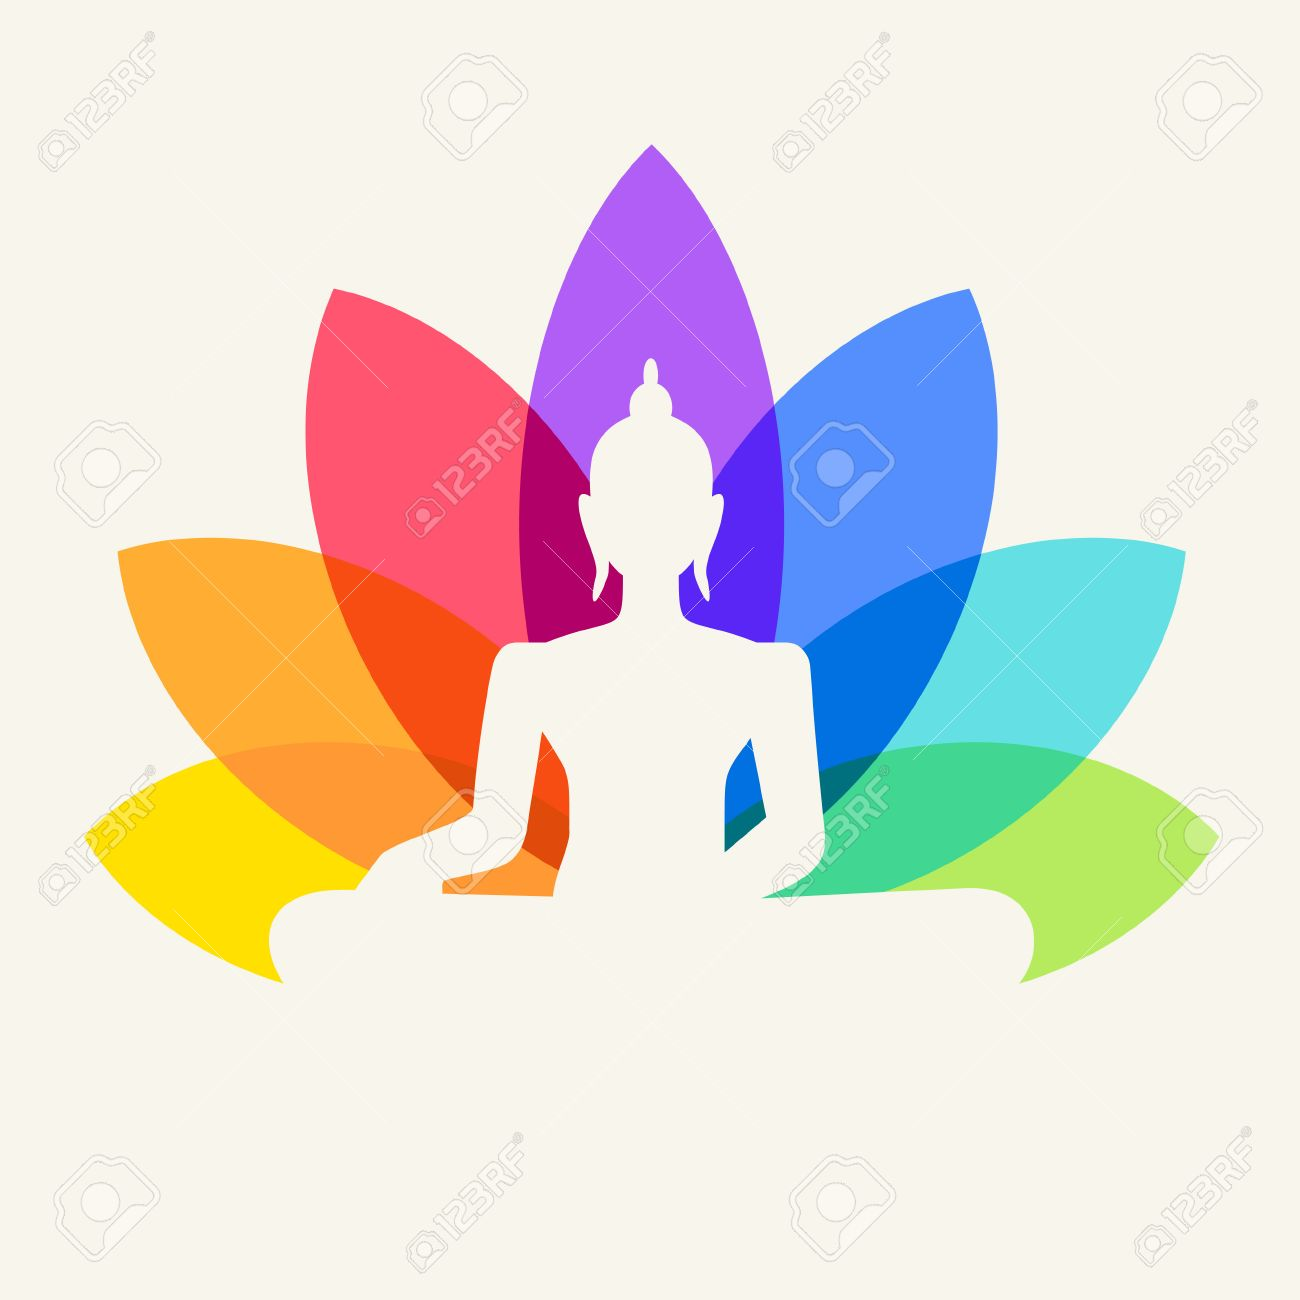 Silhouette of Buddha sitting on a lotus flower background - 32092675